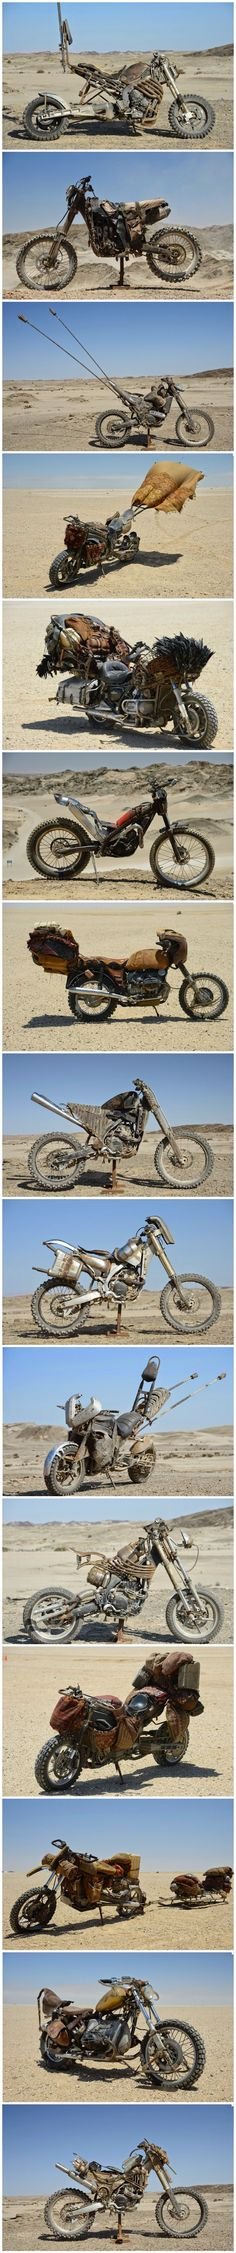 The custom motorcycles of Mad Max: Fury Road - Imgur: